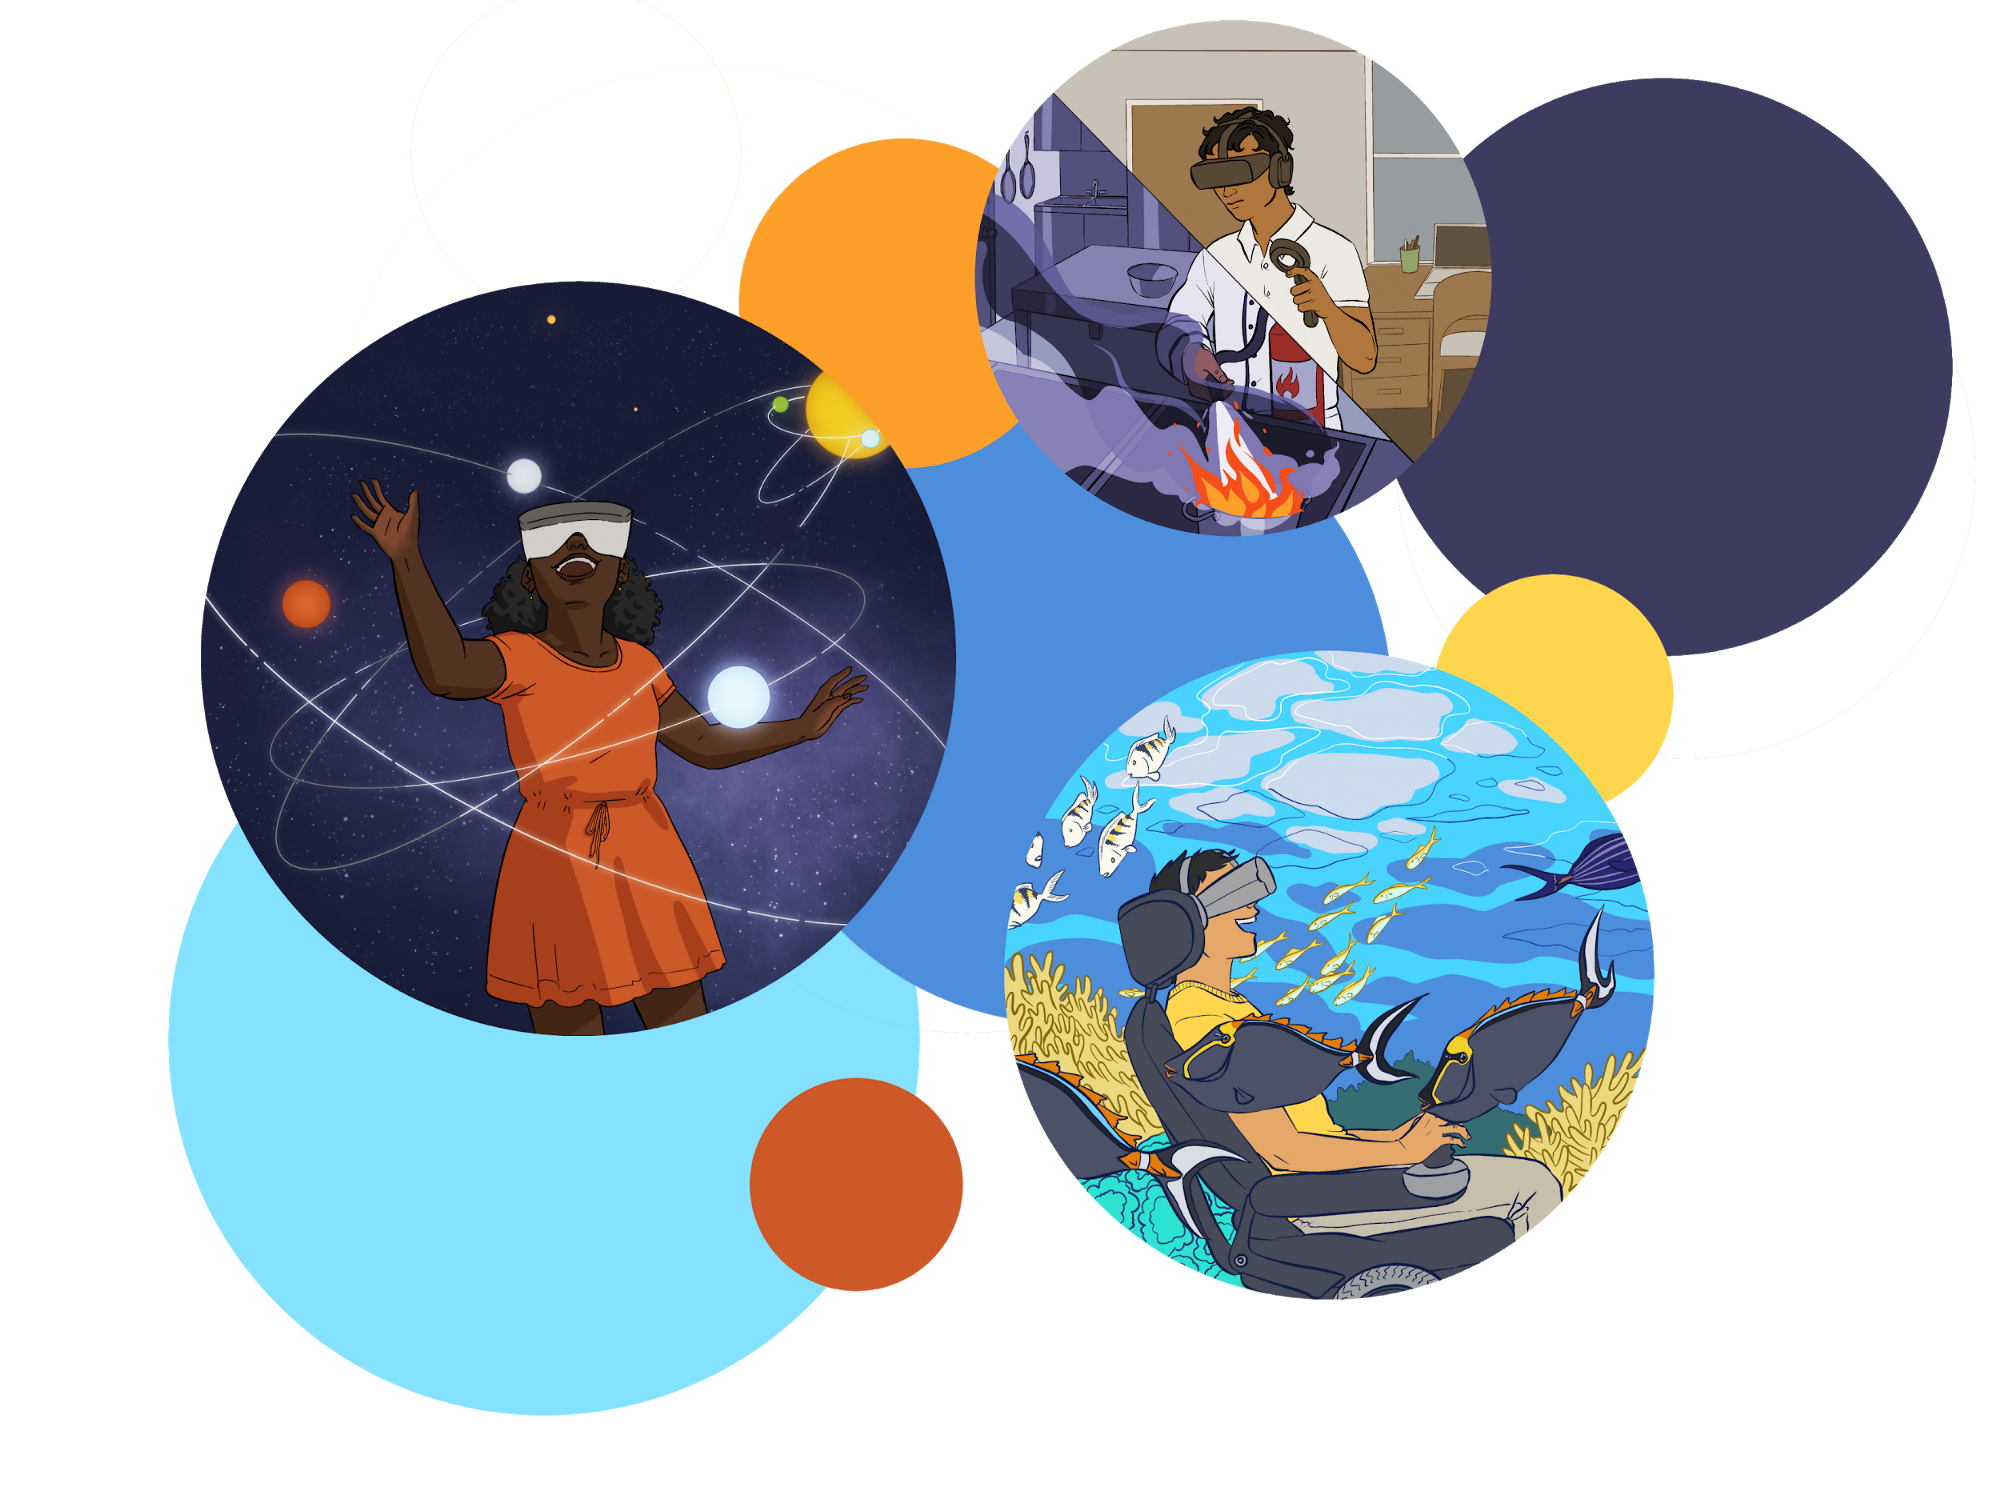 Illustration of young people using virtual reality headsets to cook in kitchen, explore outer space, and explore the ocean